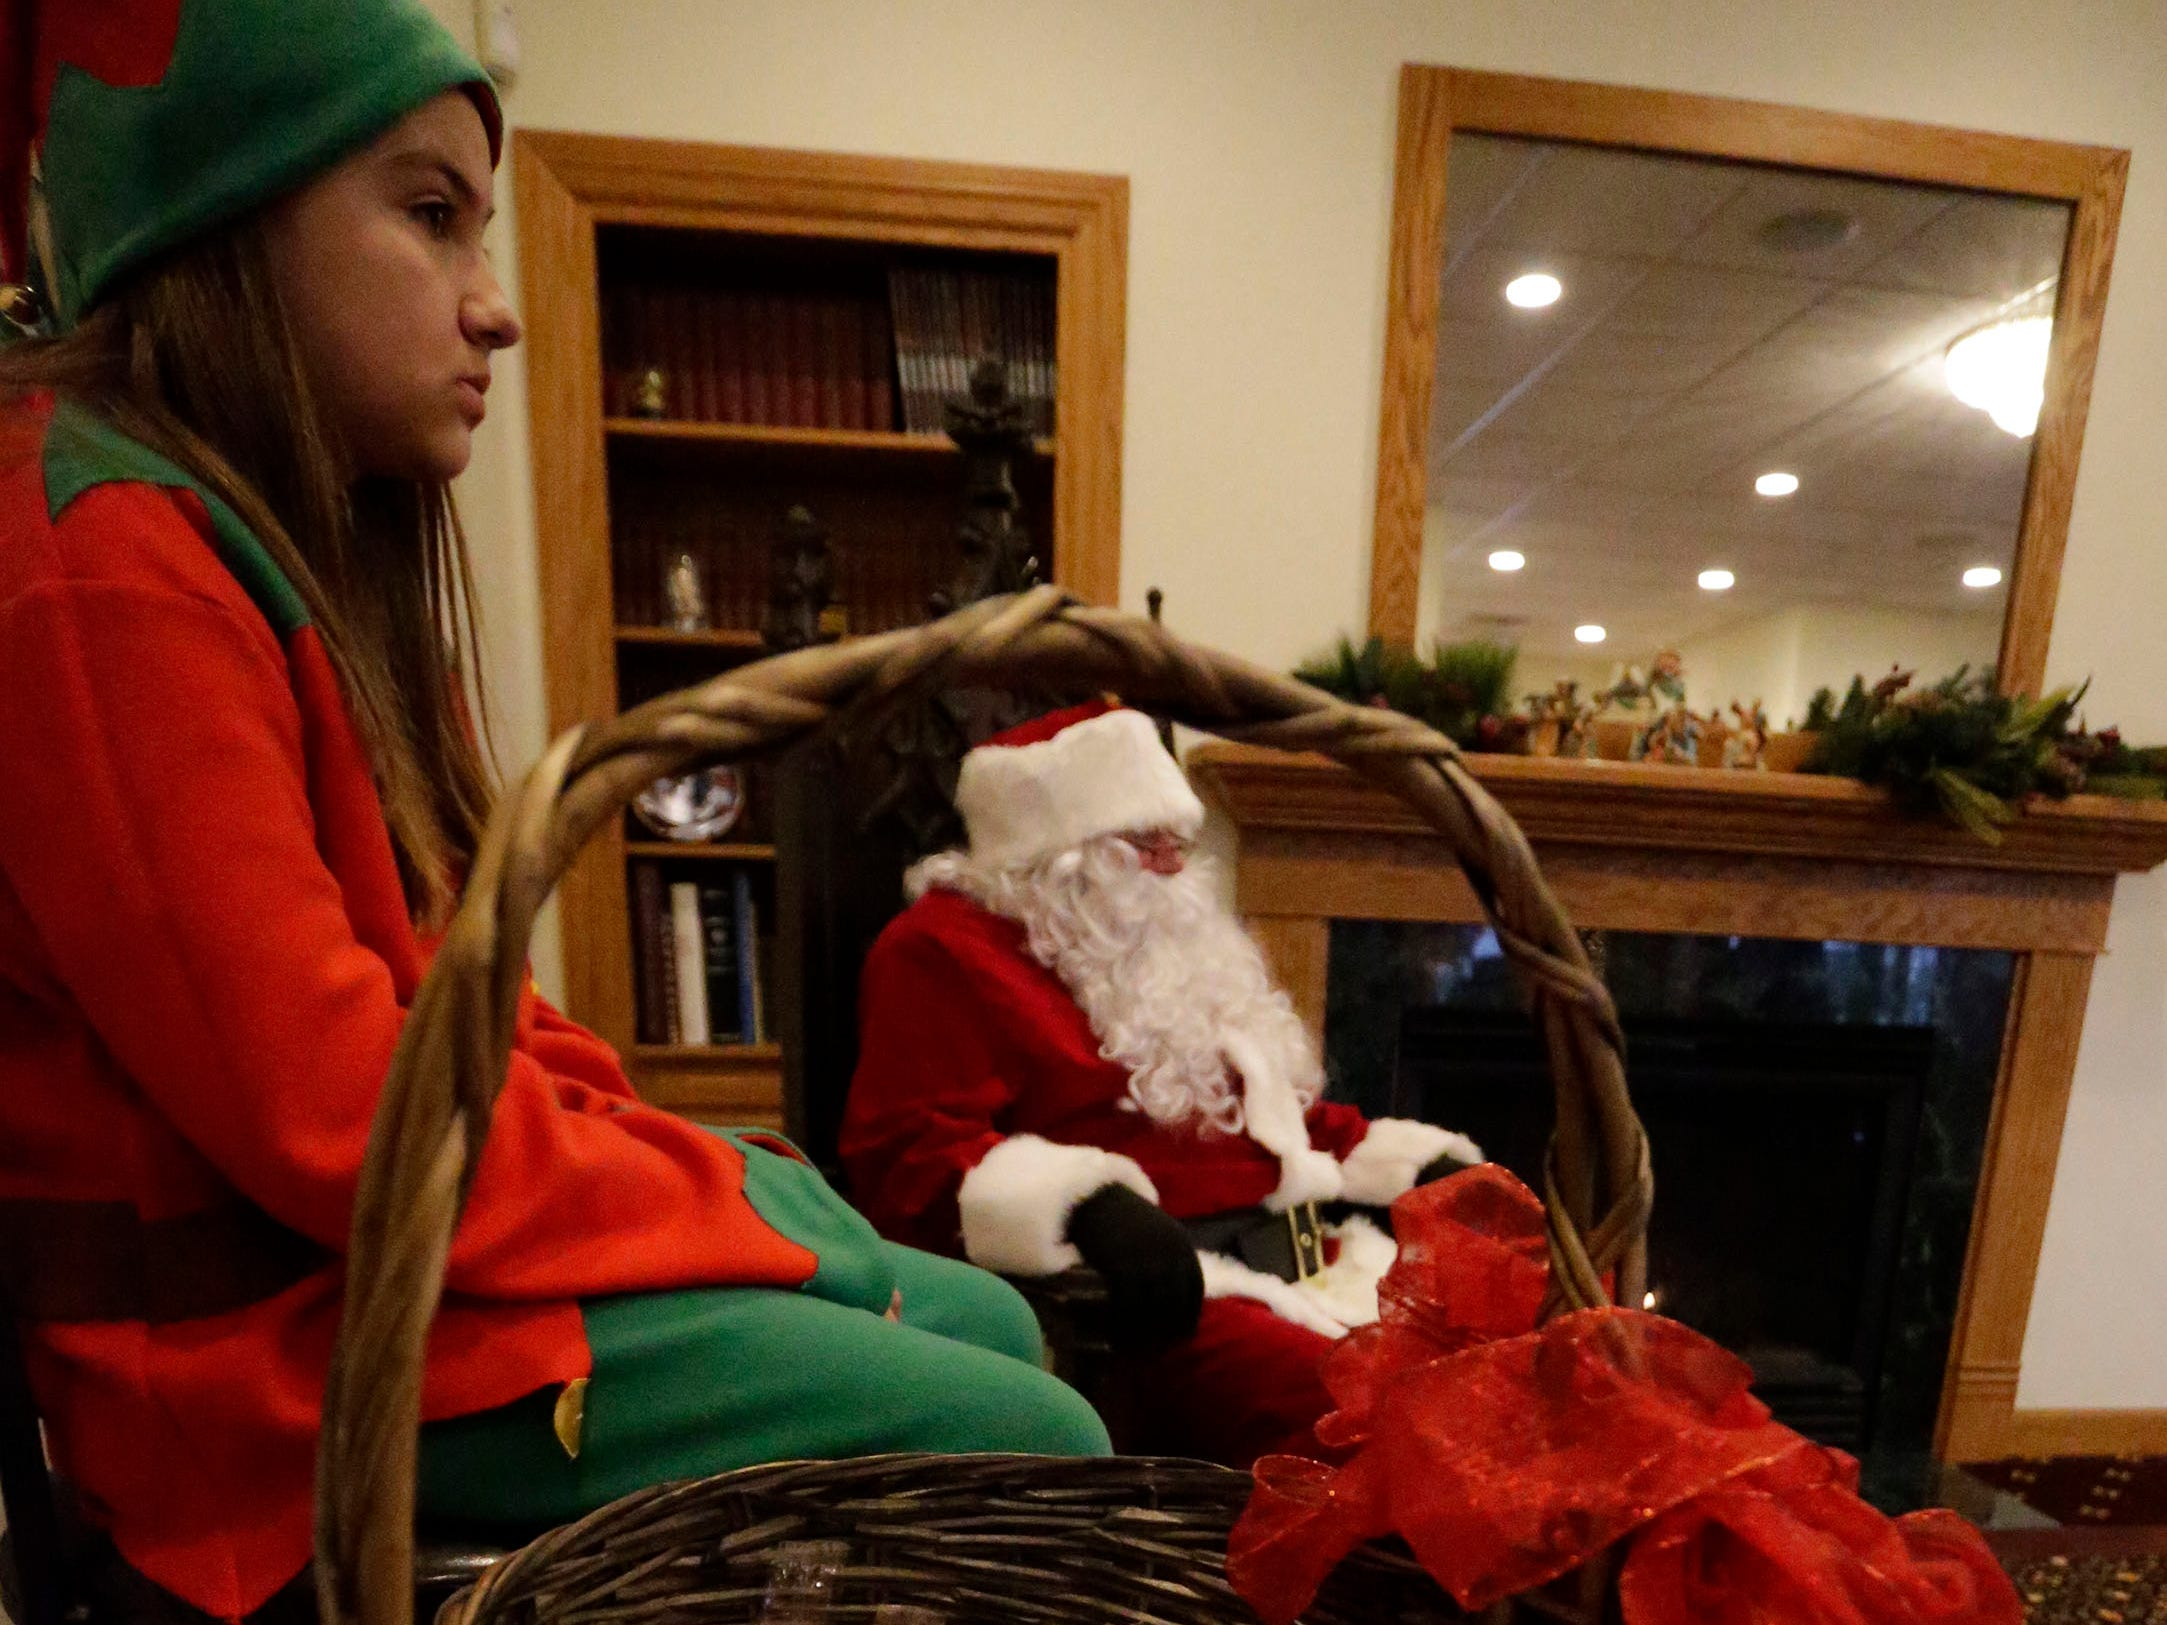 Santa awaits a child during Cookies with Santa at Zimmer Westview Funeral and Cremation Care Center Saturday, December 1, 2018, in Howards Grove, Wis.  The firm also plans to have Santa at Ballhorn Chapels on December 8, 2018.